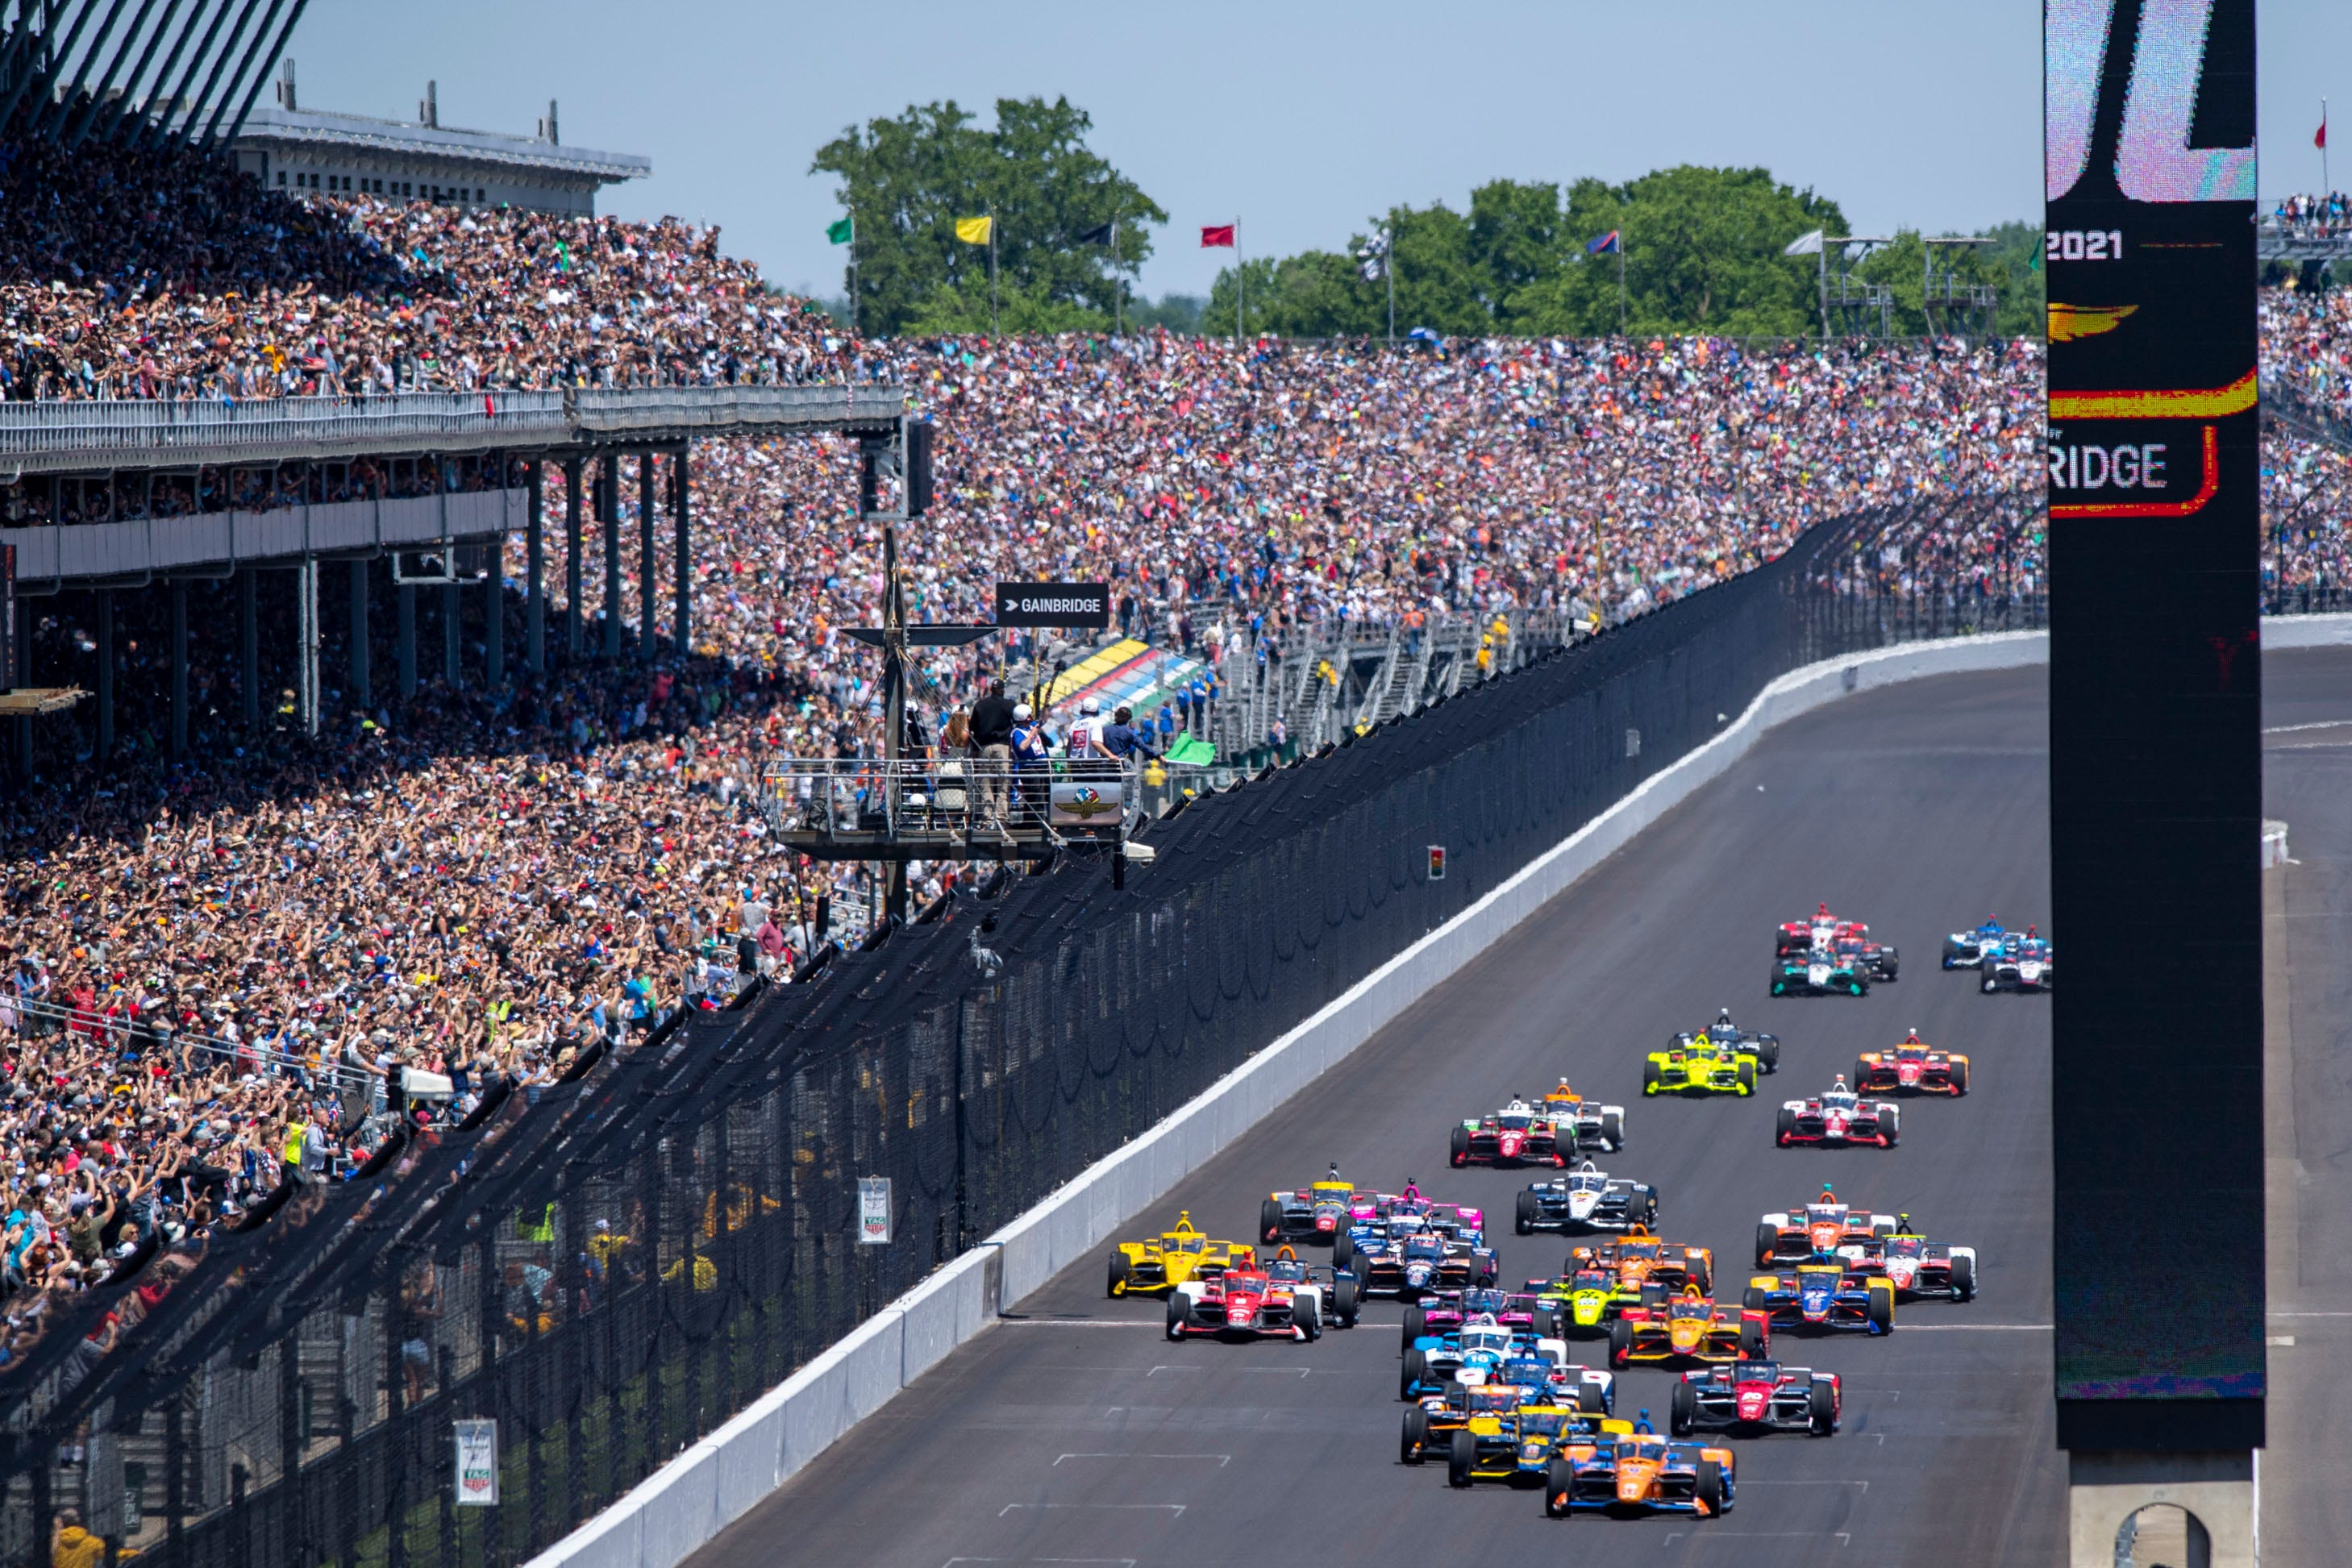 Best photos from the 2021 Indy 500 at Indianapolis Motor Speedway